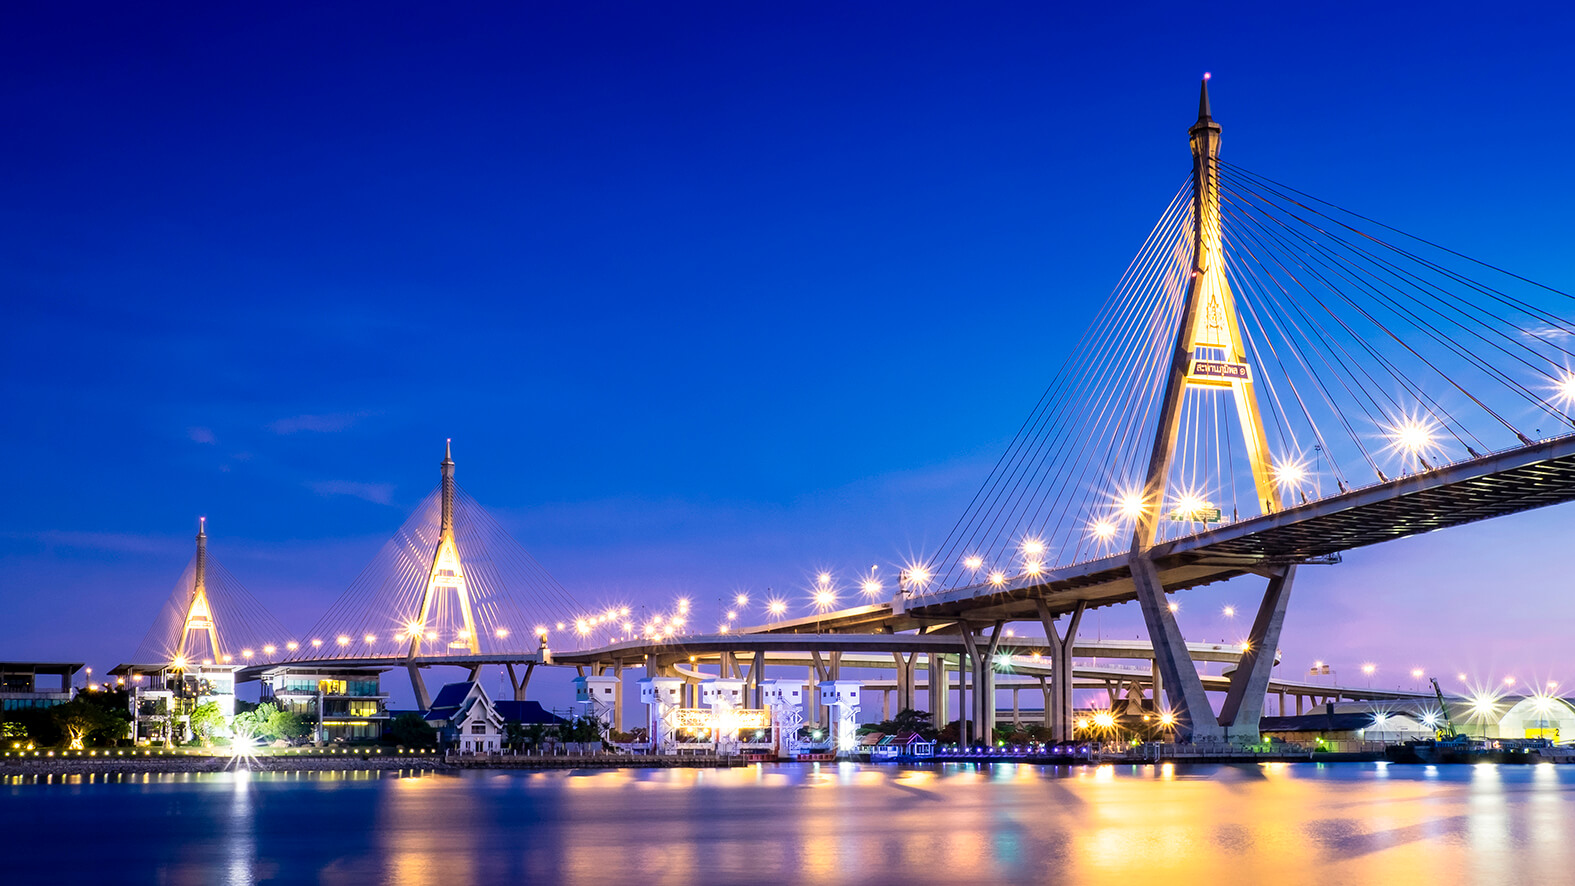 Huge Bridge over River in Bangkok, Thailand